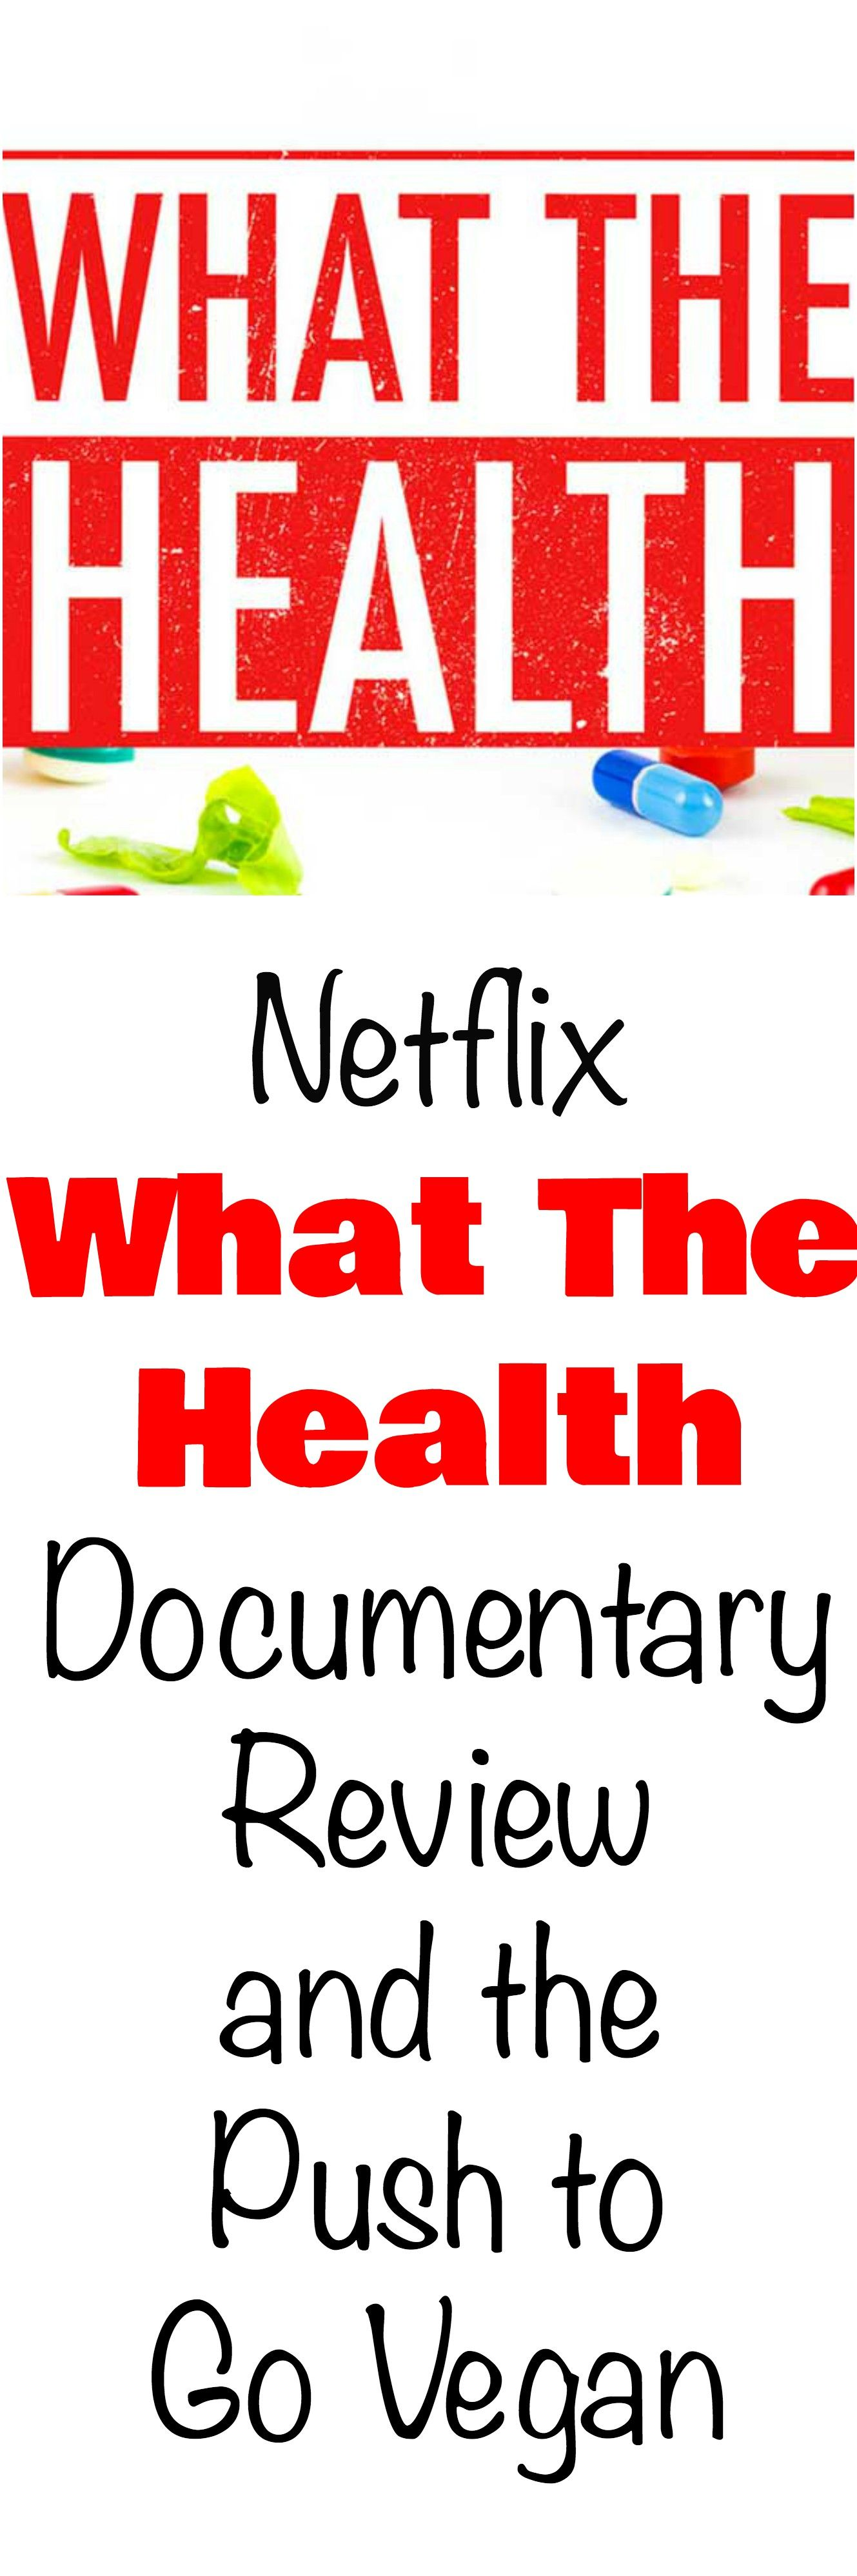 Netflix What The Health Review and the Push To